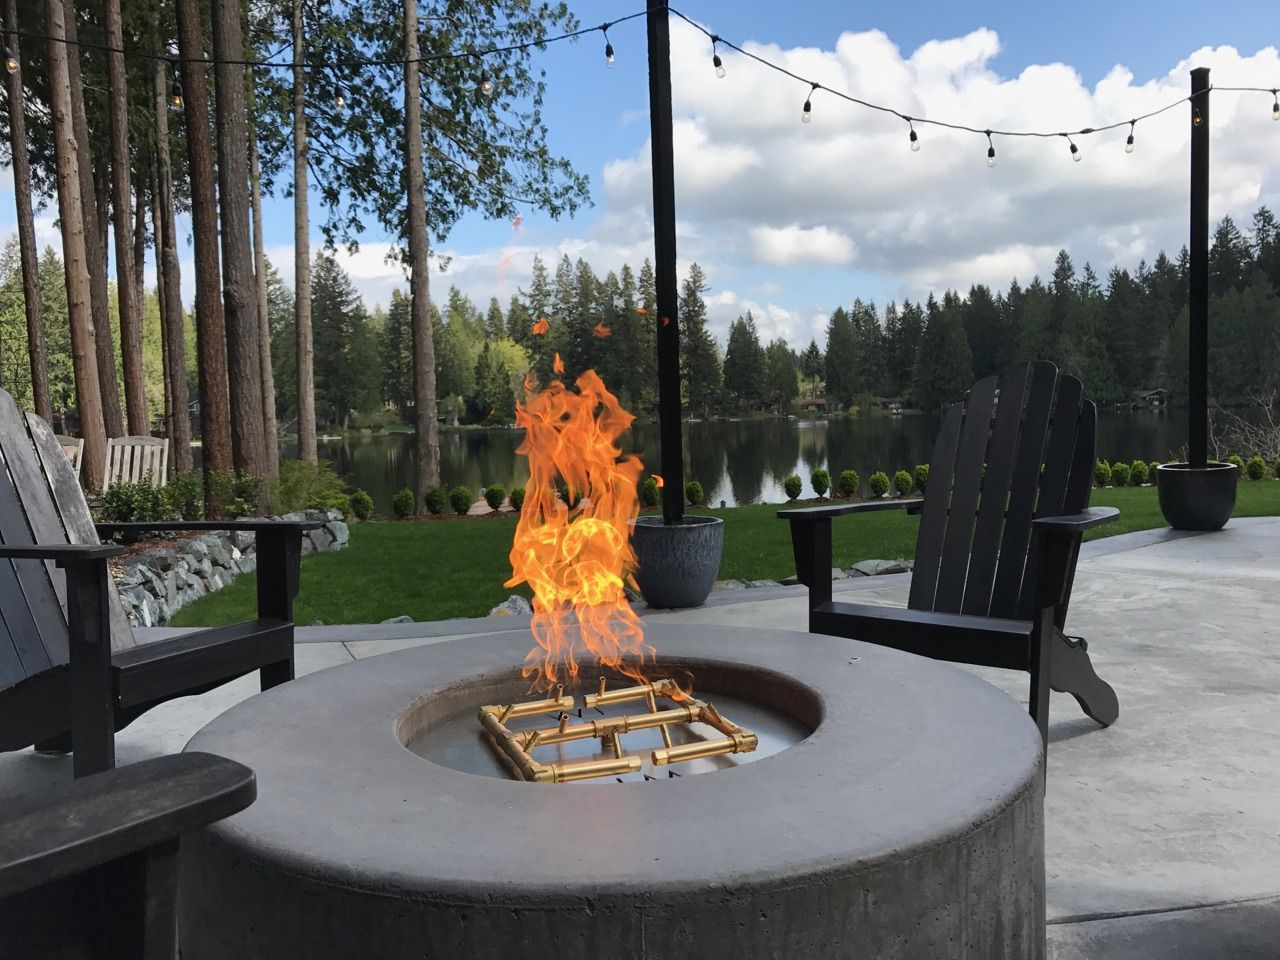 Love The Huge Flames This Warming Trends Crossfire Burner Puts Out Twice The Flame Half The Gas 12 24 Inch Flame H Cool Fire Pits Fire Pit Custom Fire Pit